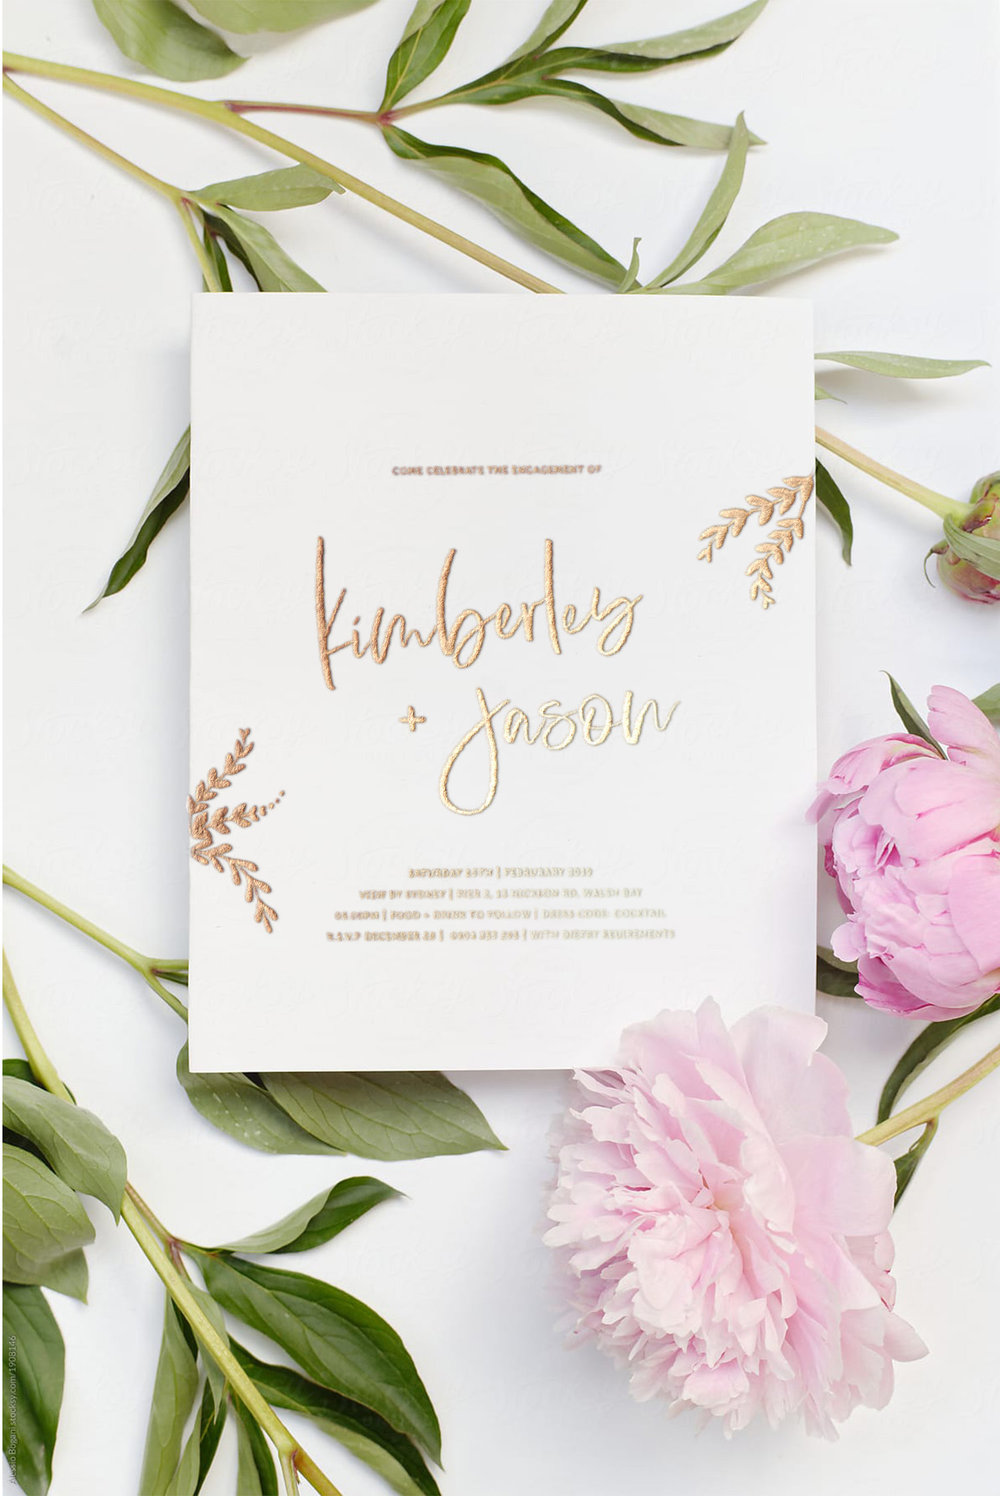 wedding stationery tips + tricks - and how to. make them special whilst saving money